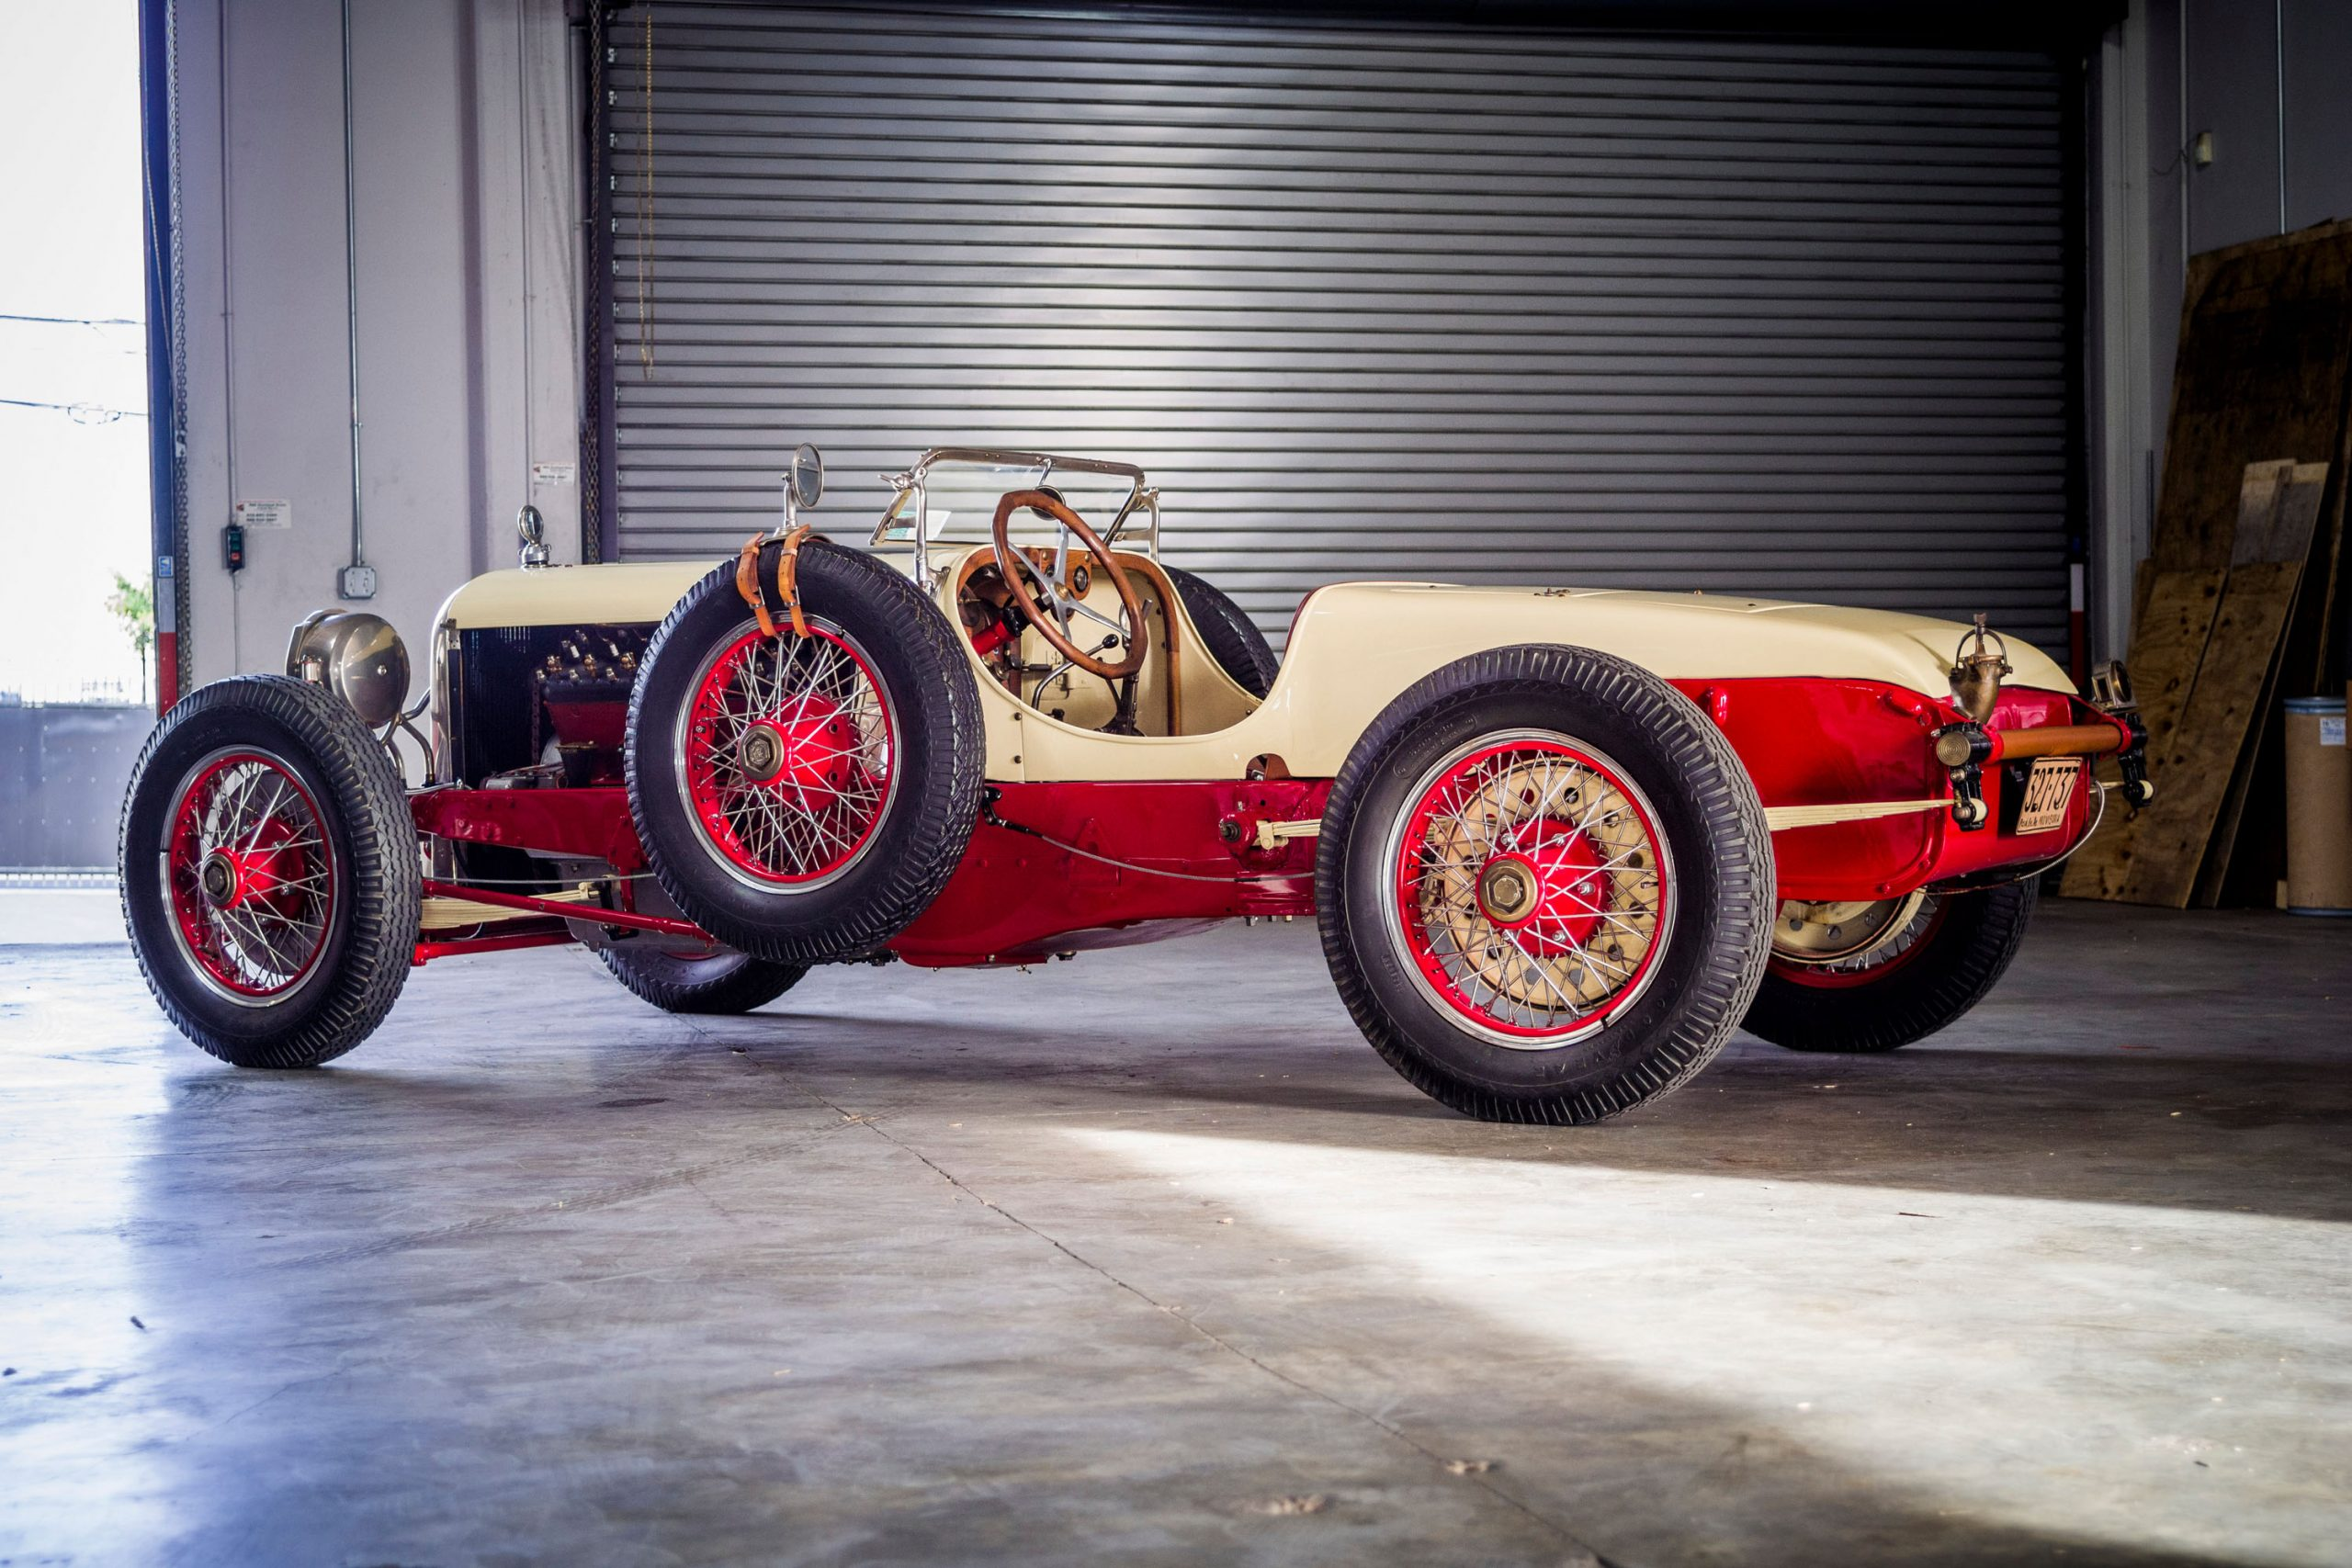 2021 1917 Packard 2-25 Twin Six Runabout (Credit - ©2021 Courtesy of RM Sotheby's)